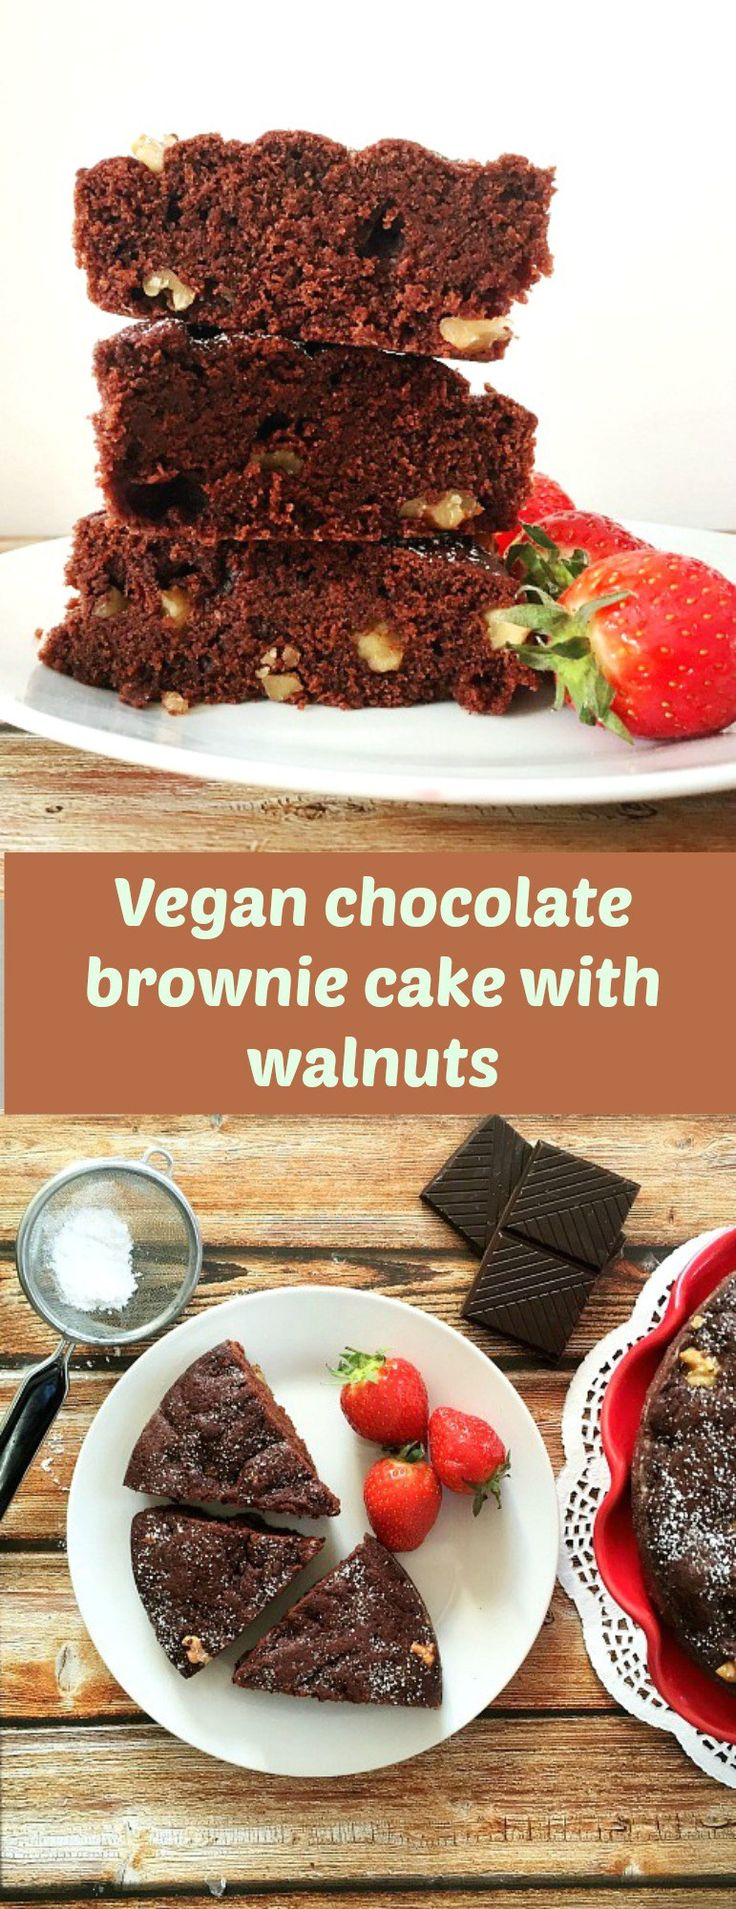 Vegan chocolate brownie cake with walnuts, the much-loved chocolate brownie recipe, but egg and diary free. How good is that? Treat yourself to a guilt-free dessert.